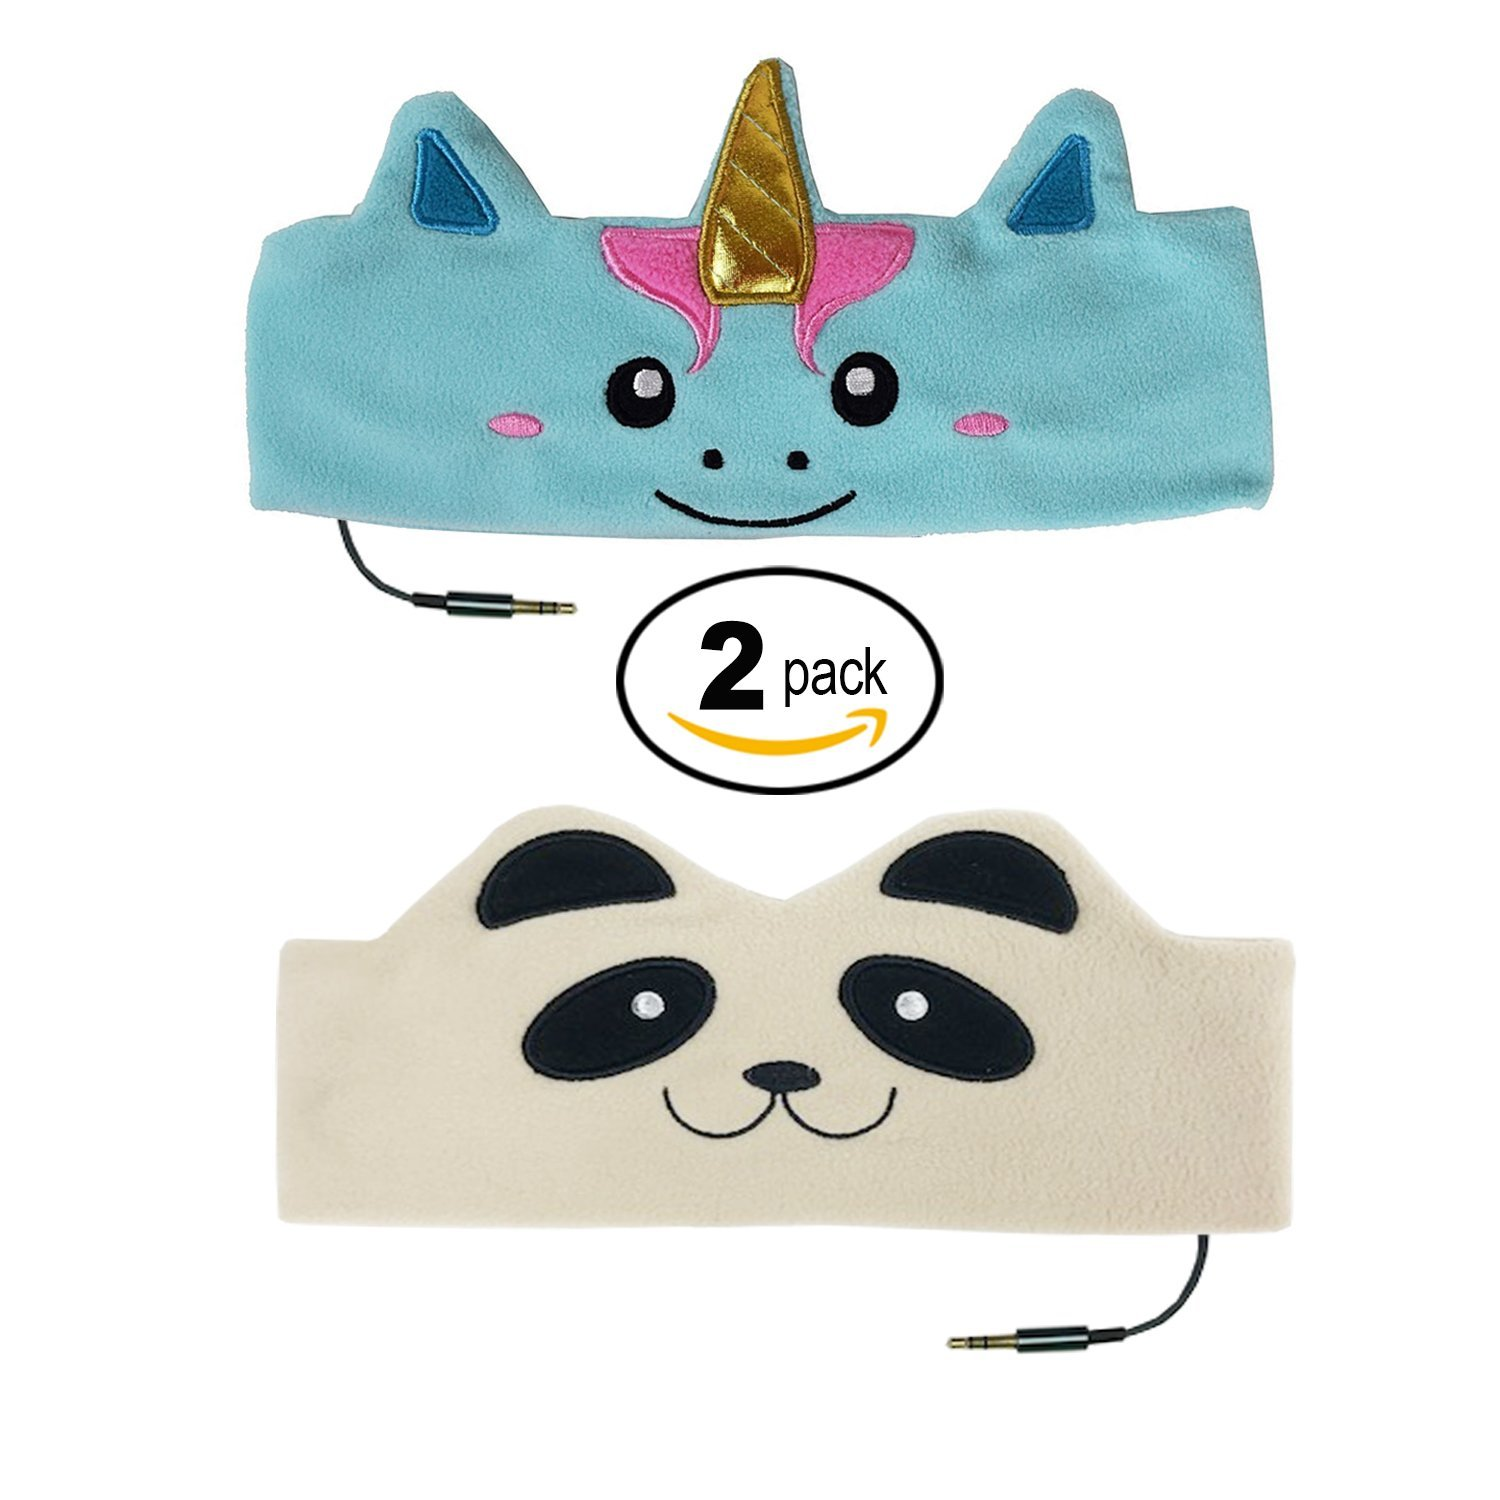 CozyPhones Cute (Purple and Green Froggy) Soft Character Headband Headphones (Value 2 Pack) Safe Music Volume Limited Home Travel Sleep Boys Girls